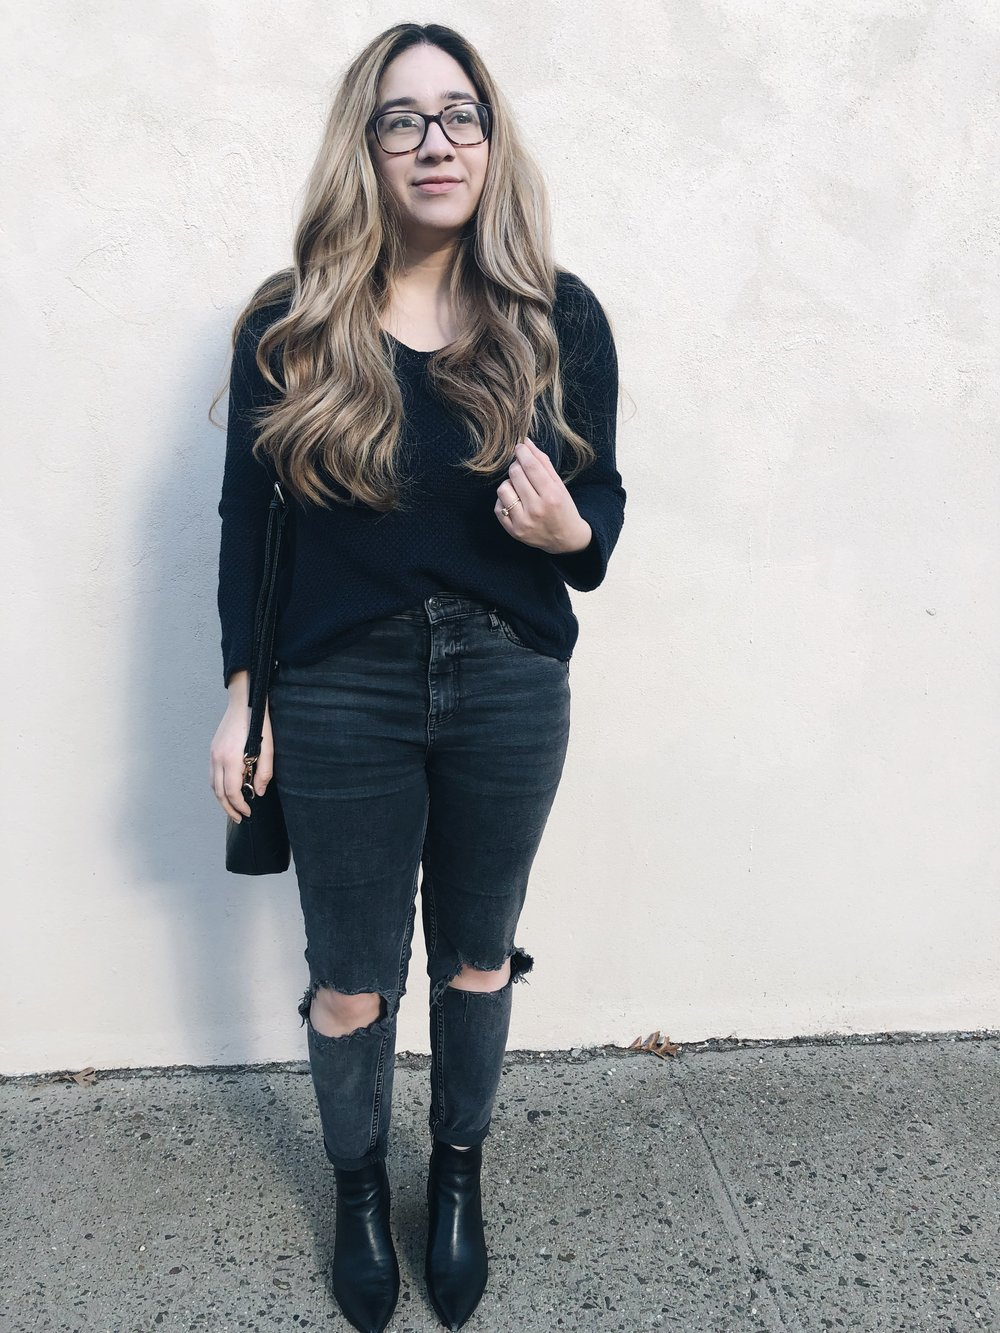 Top: Banana Republic (Thrifted)  Jeans: Free People  Boots: Marc Fisher (DSW)